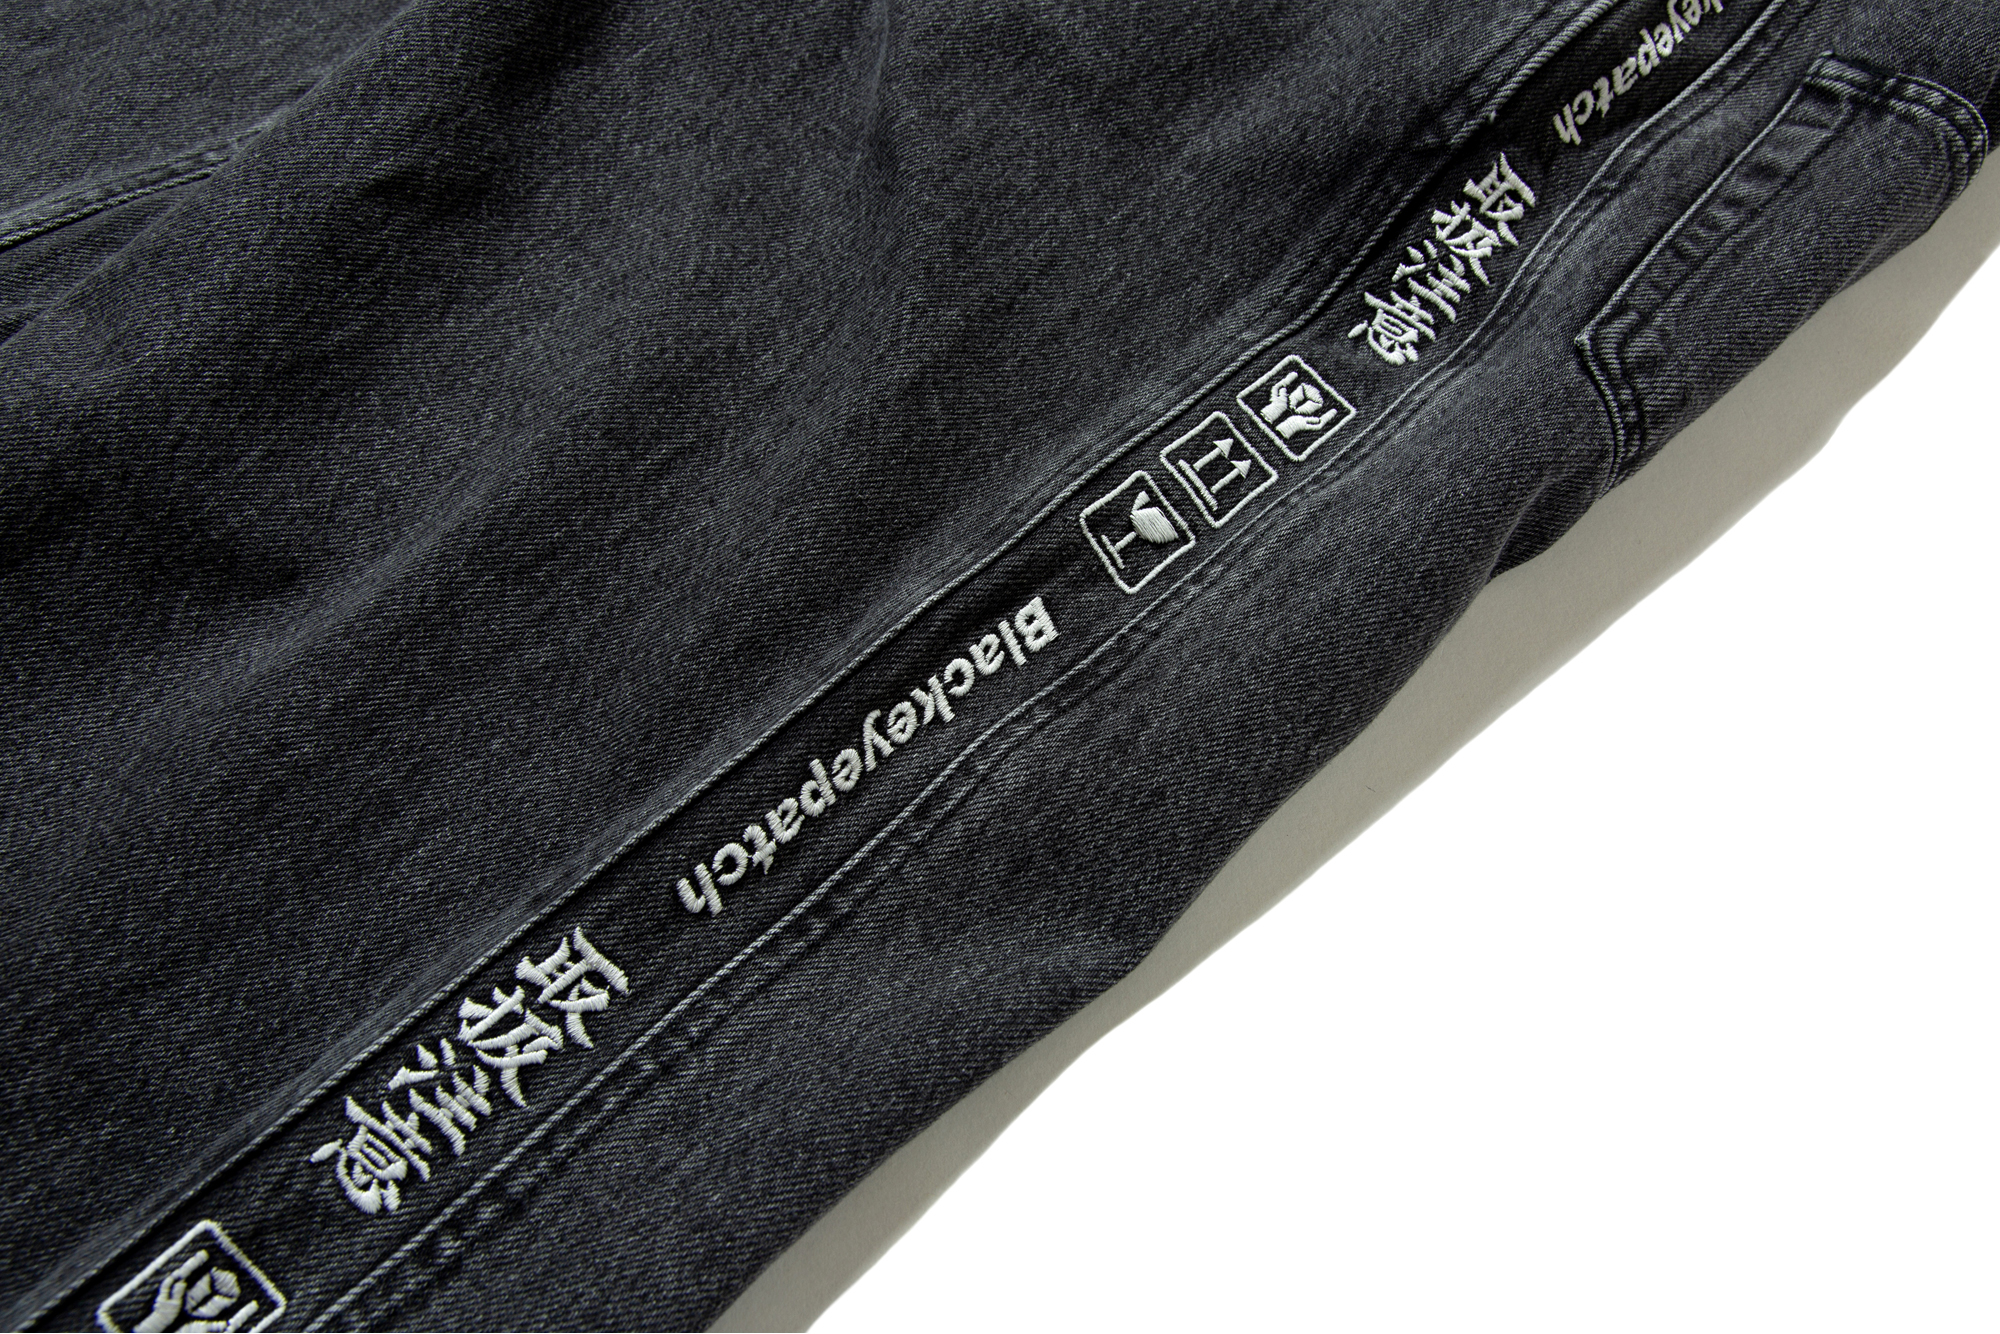 handle-with-care-denim-pants_p1